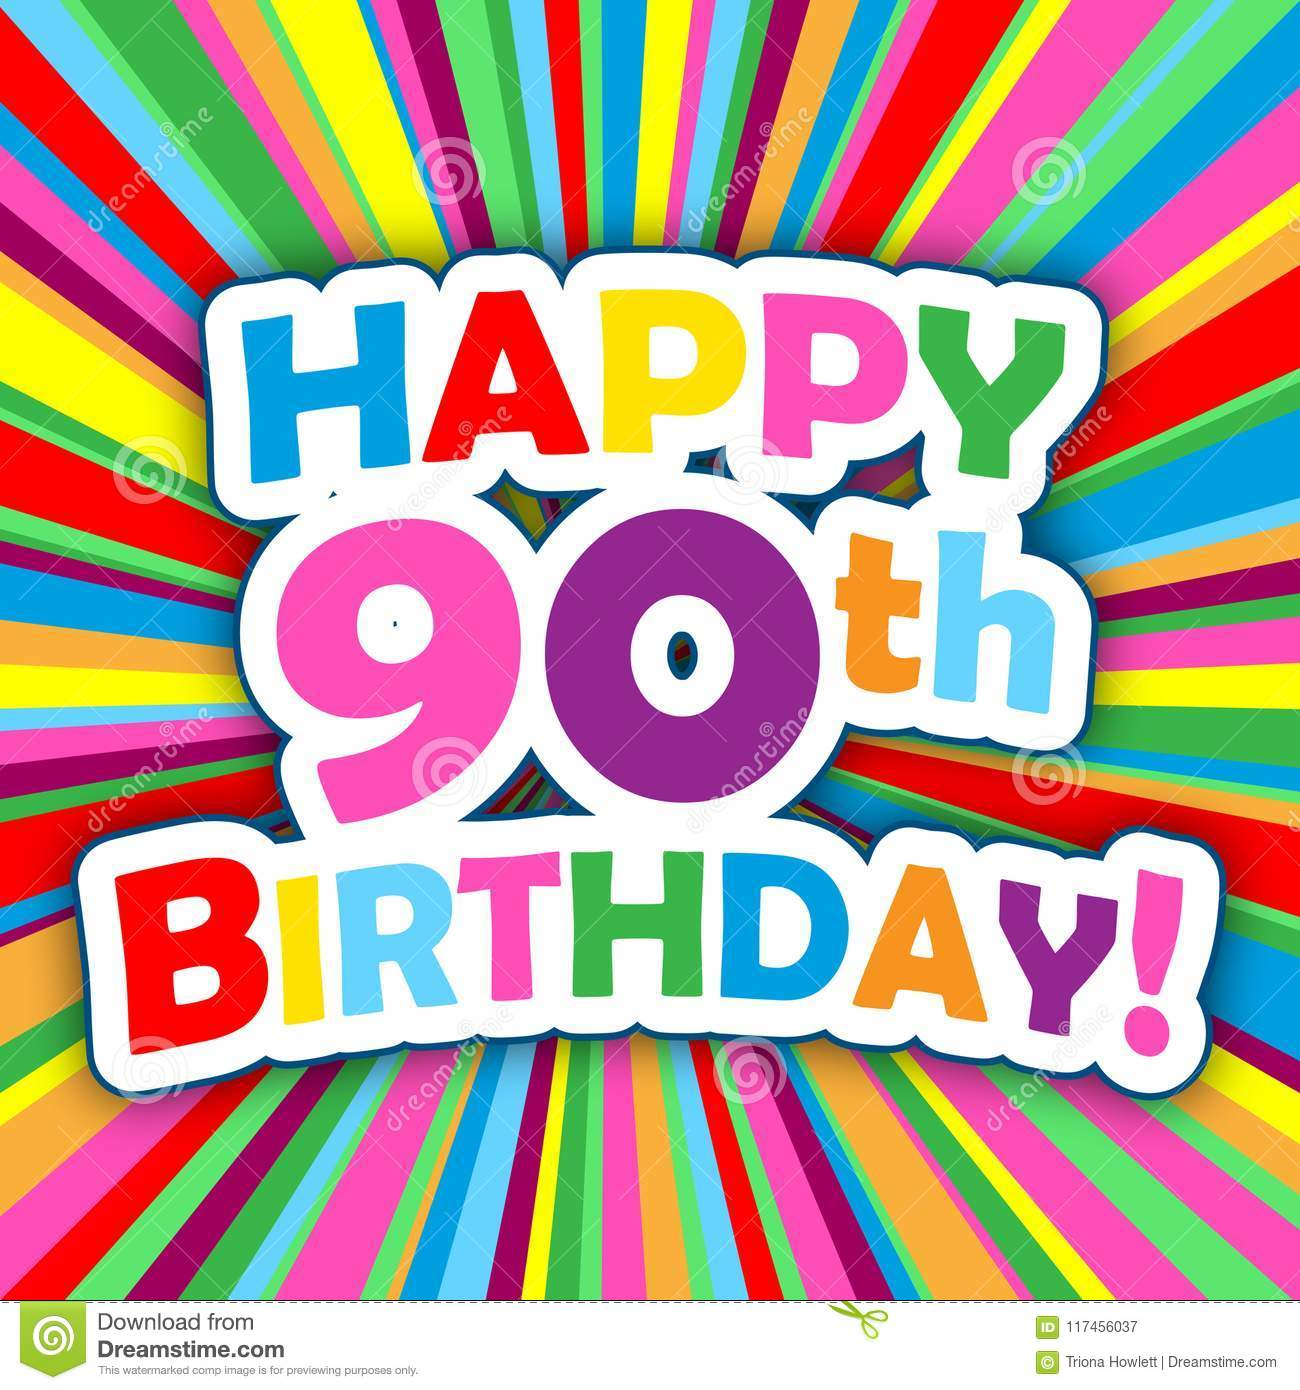 HAPPY 90th BIRTHDAY Card On Bright And Colorful Radial Background Vector Square Format